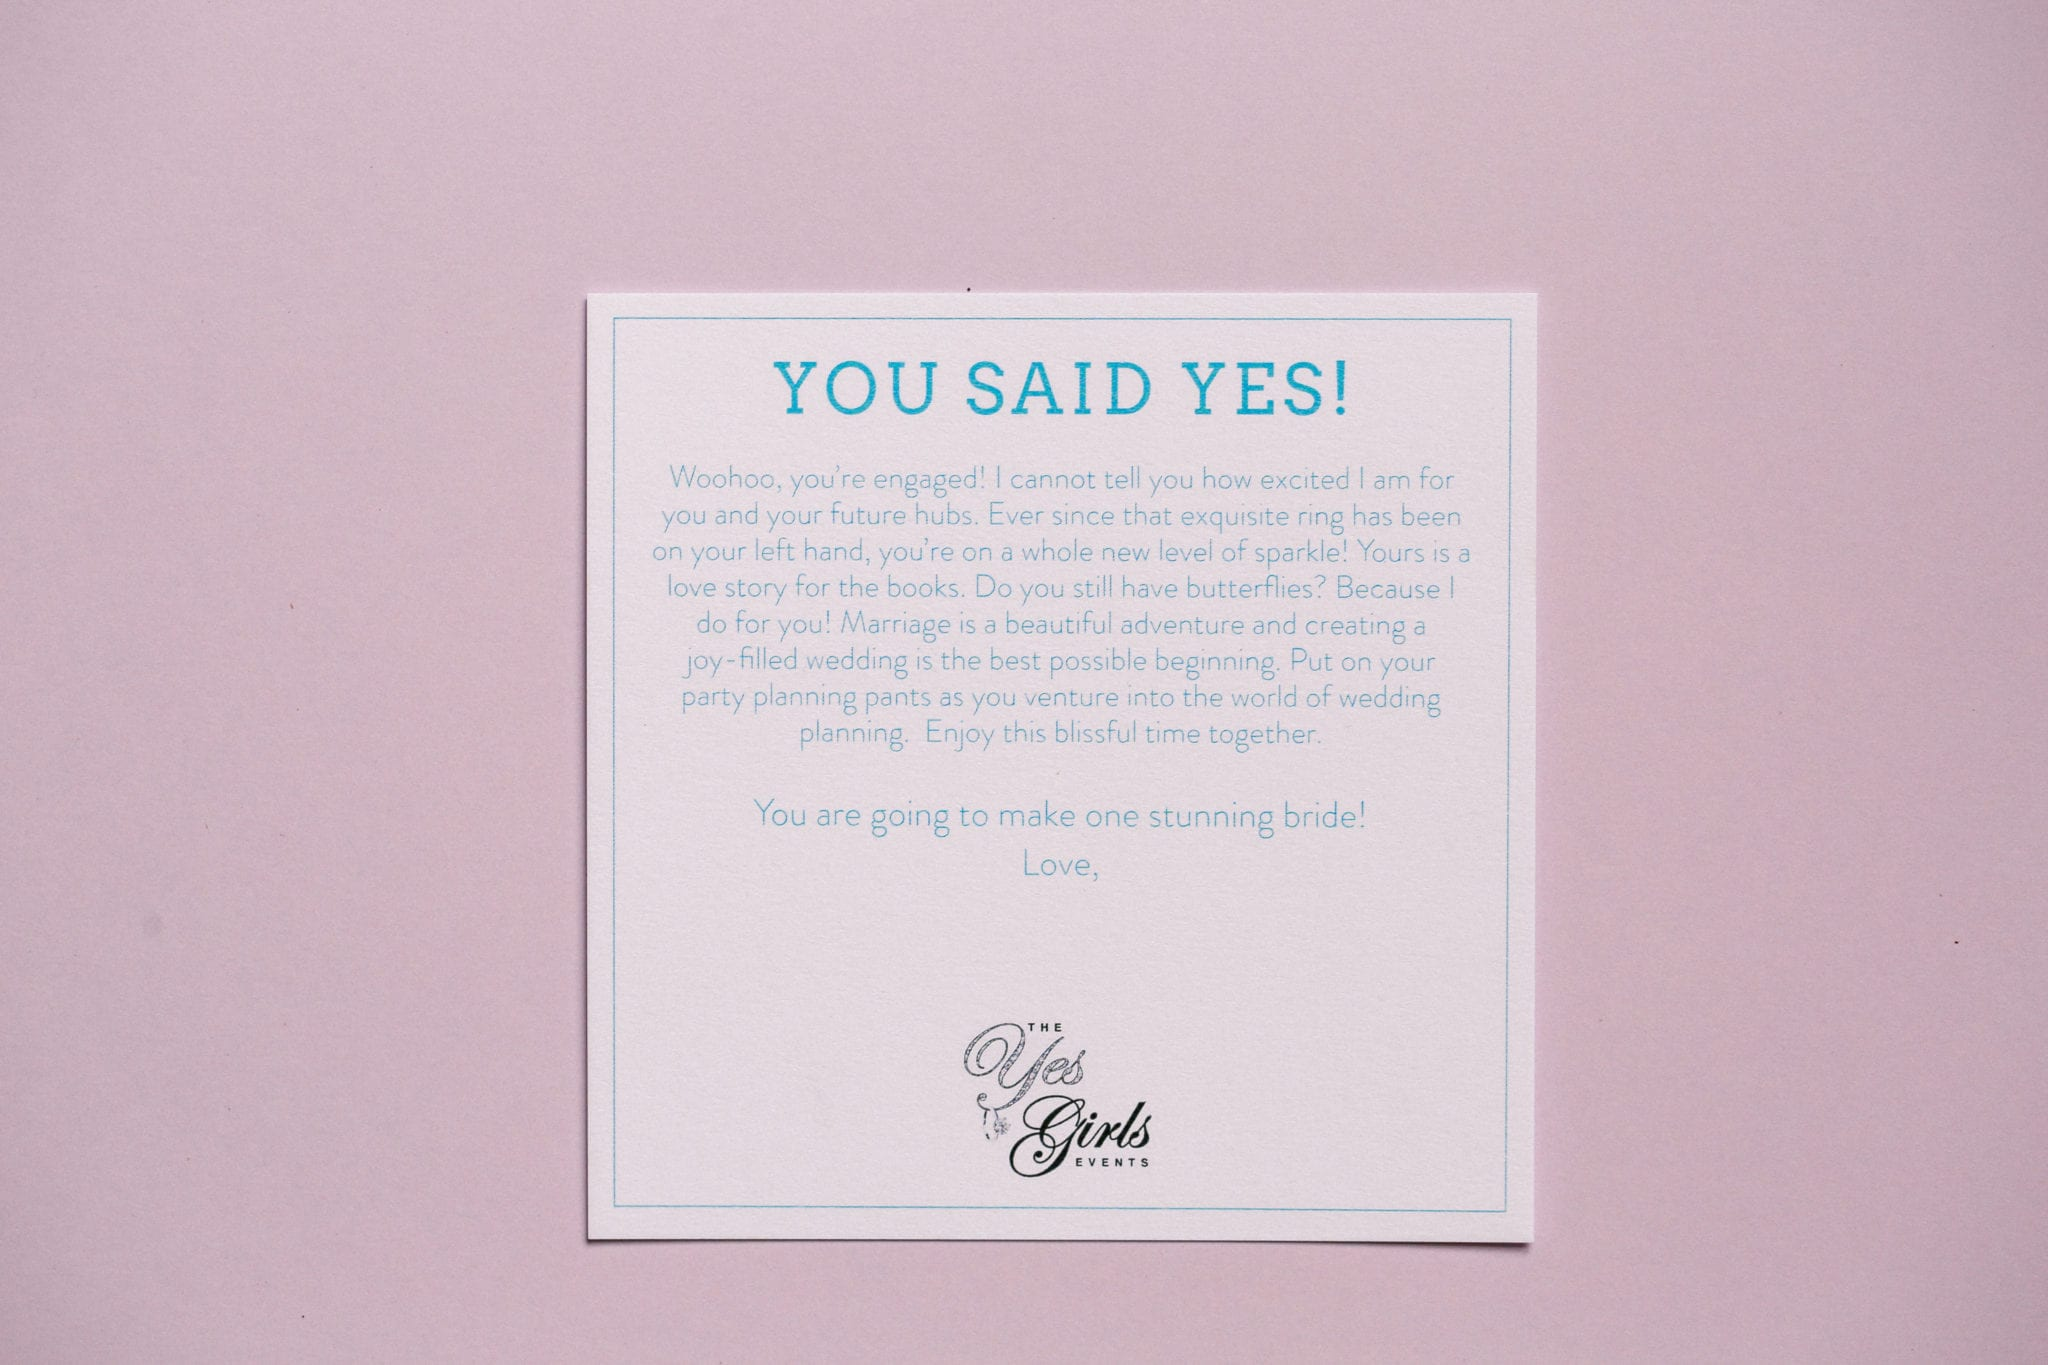 She Said Yes Greeting Card | The Yes Girls Just Engaged Box for bride to be